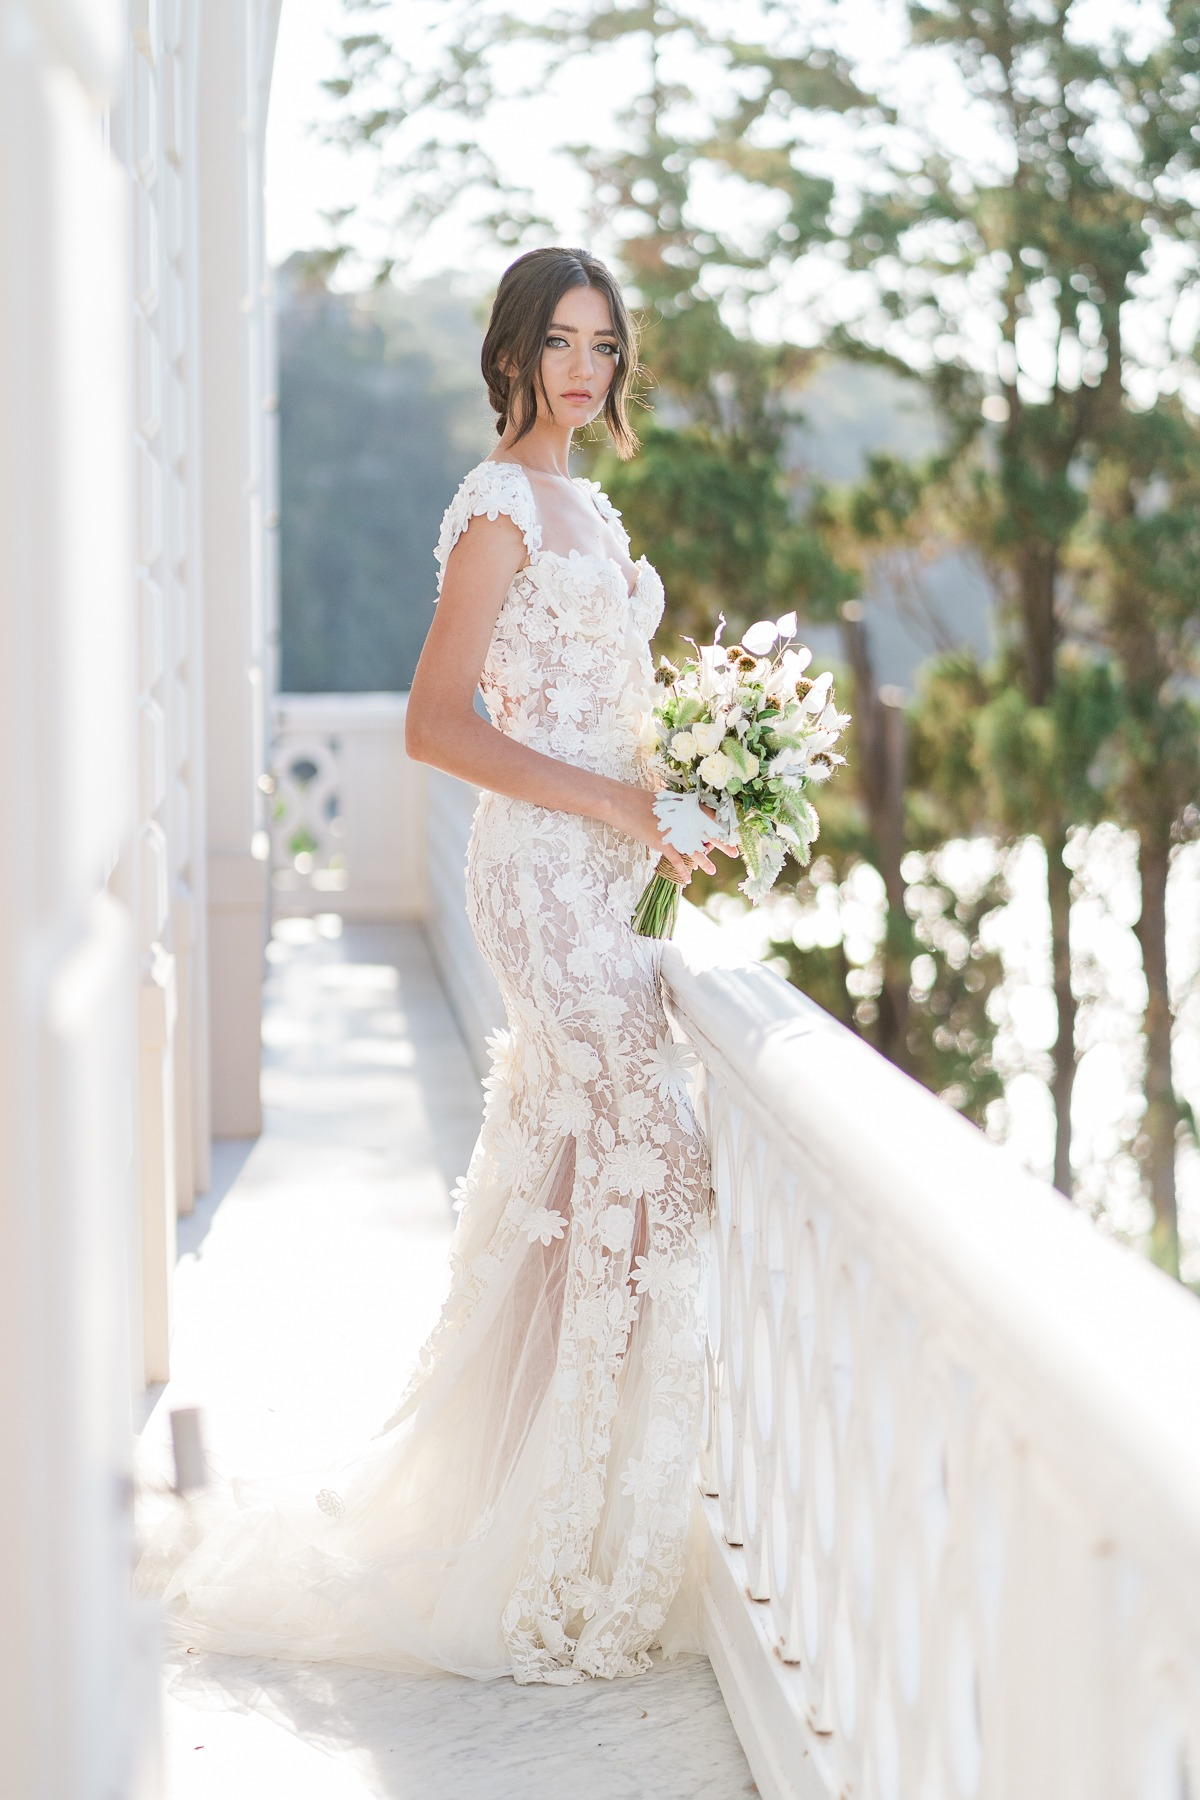 Romantic Italian Wedding Inspiration With A Breathtaking View